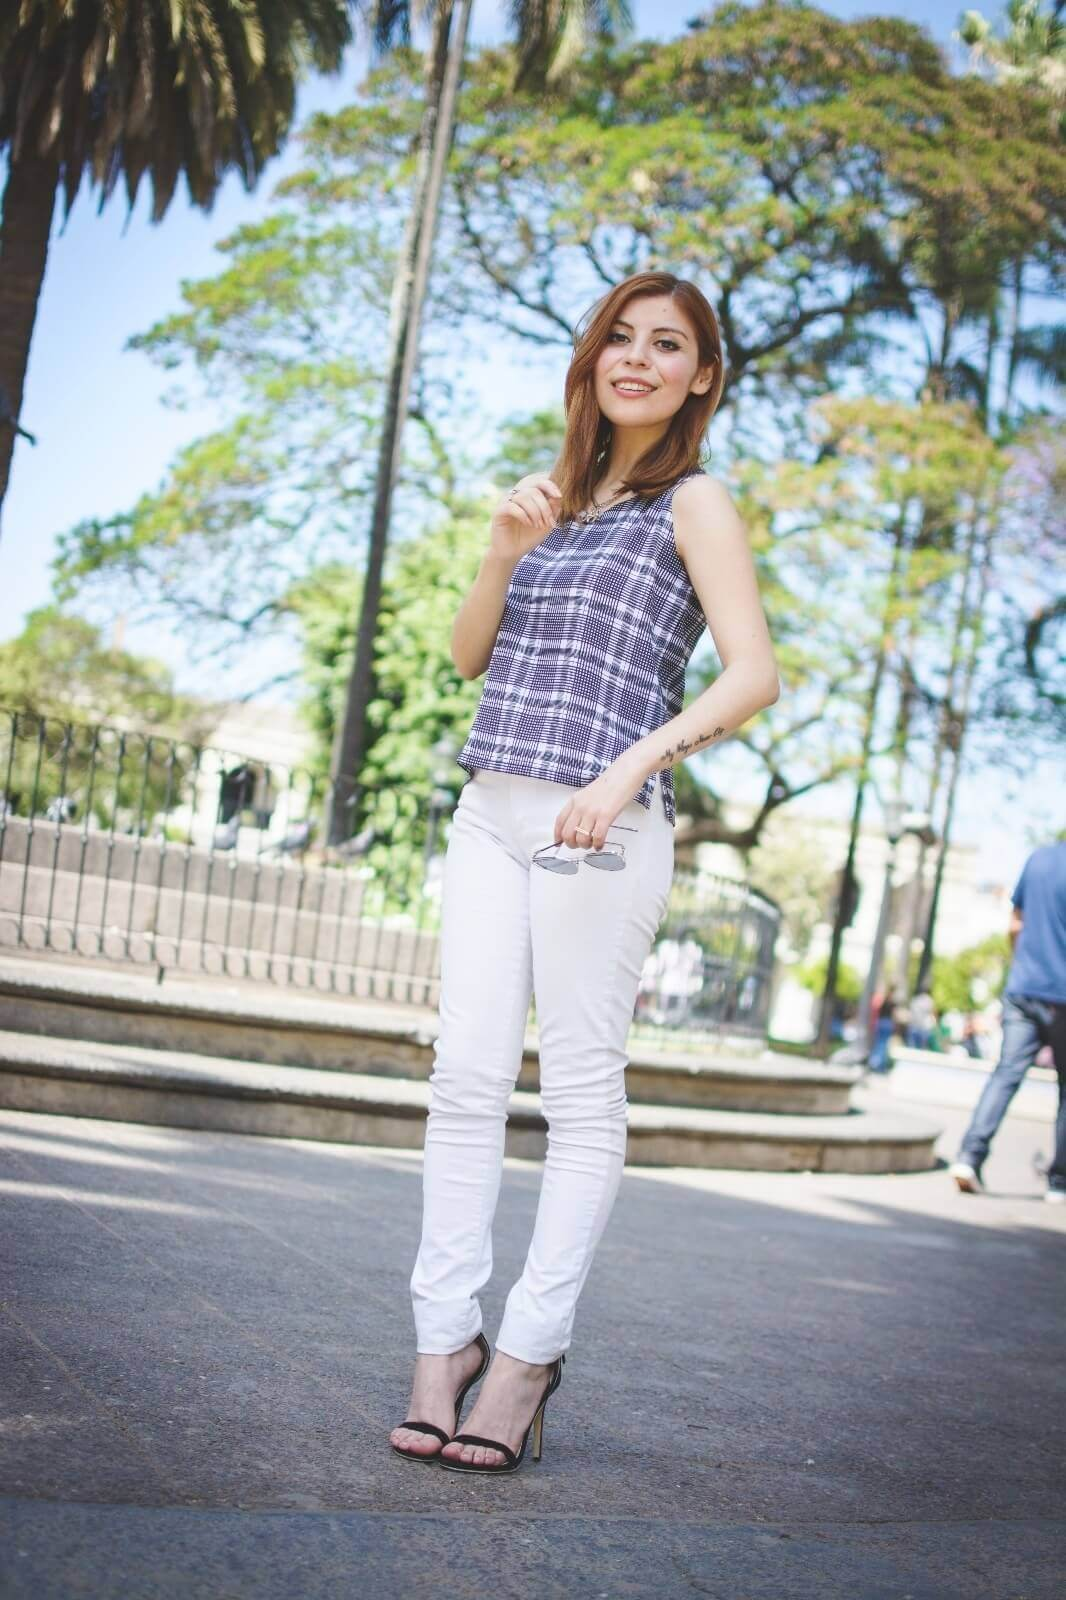 black-and-white-top-skinny-jeans-deborah-ferrero-style-by-deb-gamiss-sandals-streetstyle01